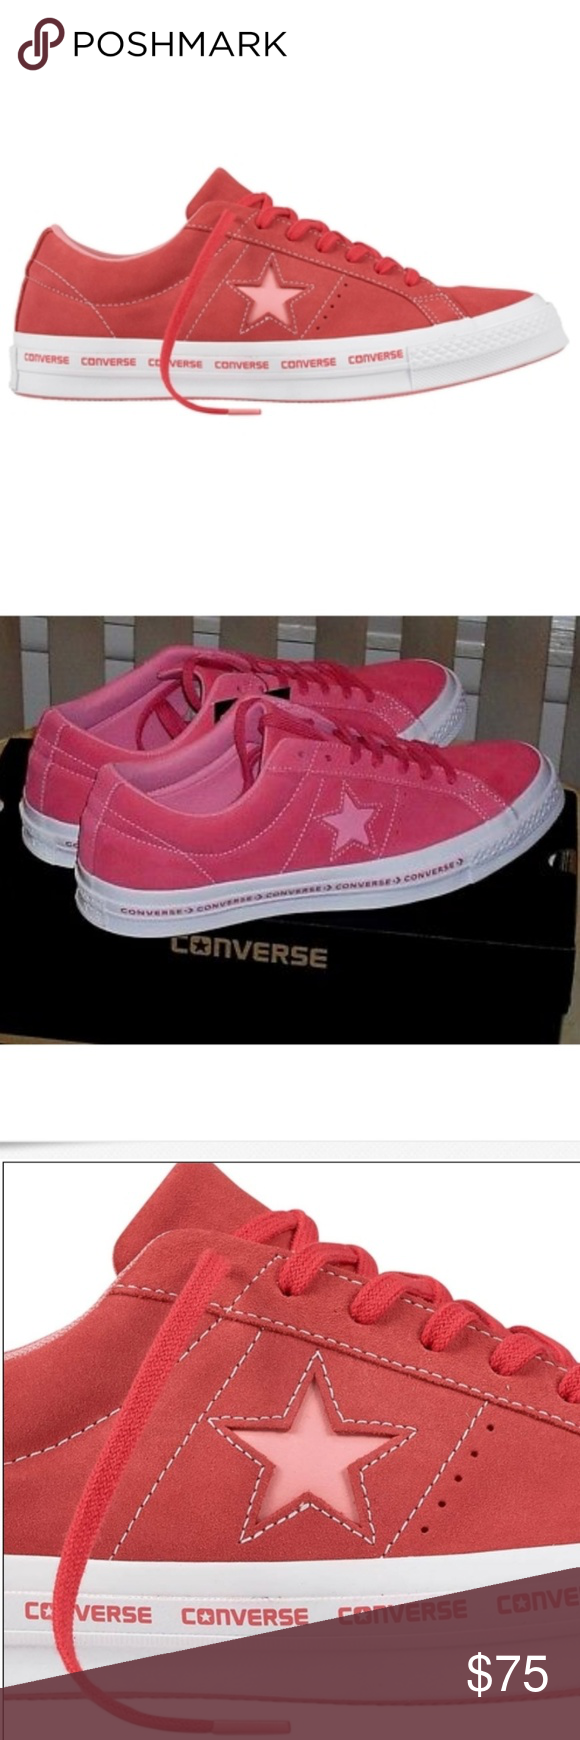 converse one star paradise pink